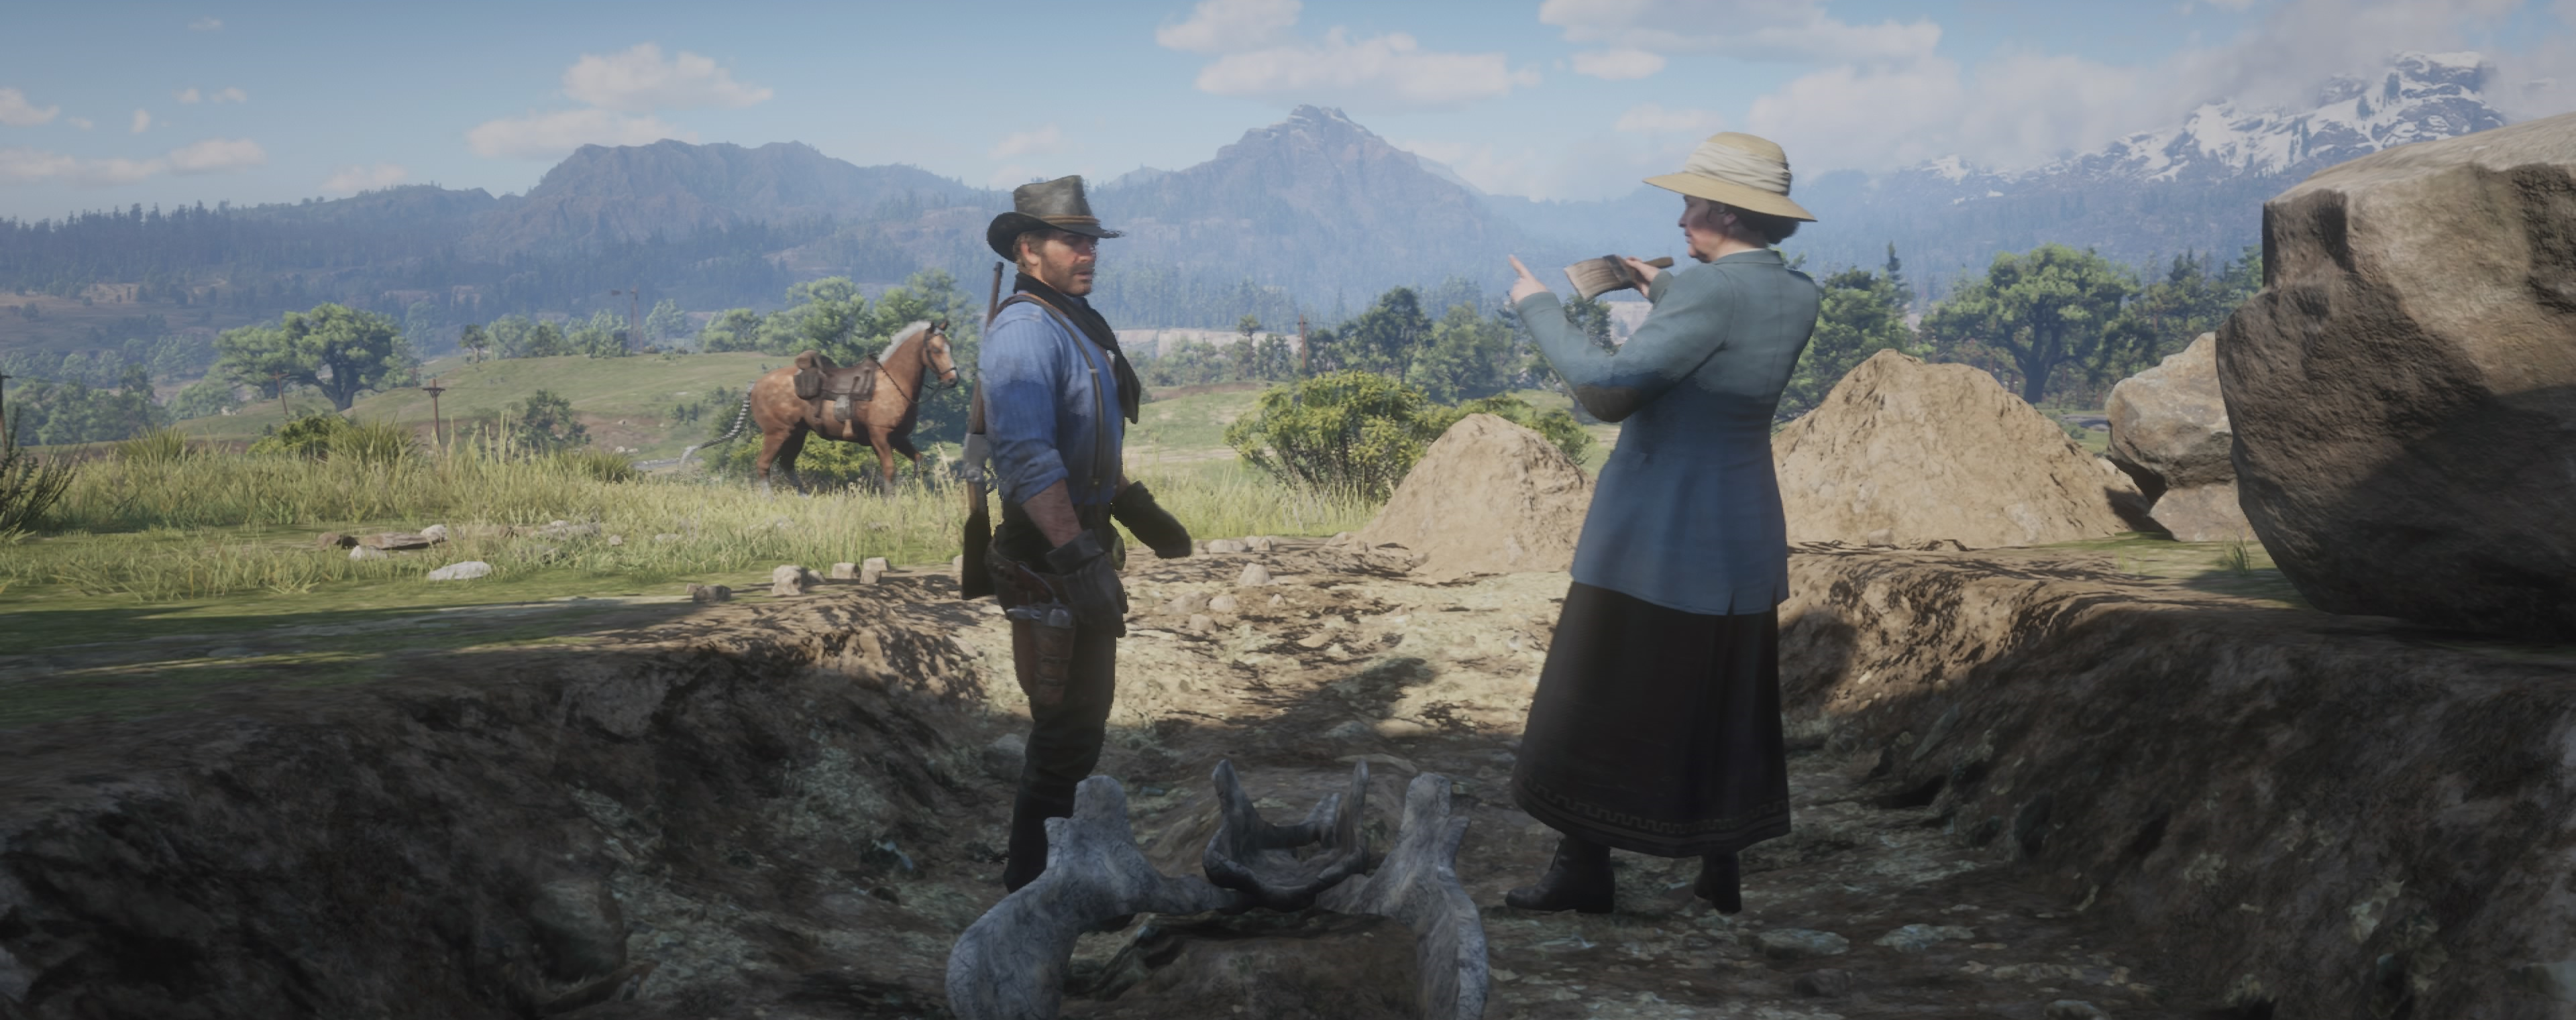 4ea0a6515 Red Dead Redemption 2 guide: Dinosaur bone locations and rewards ...